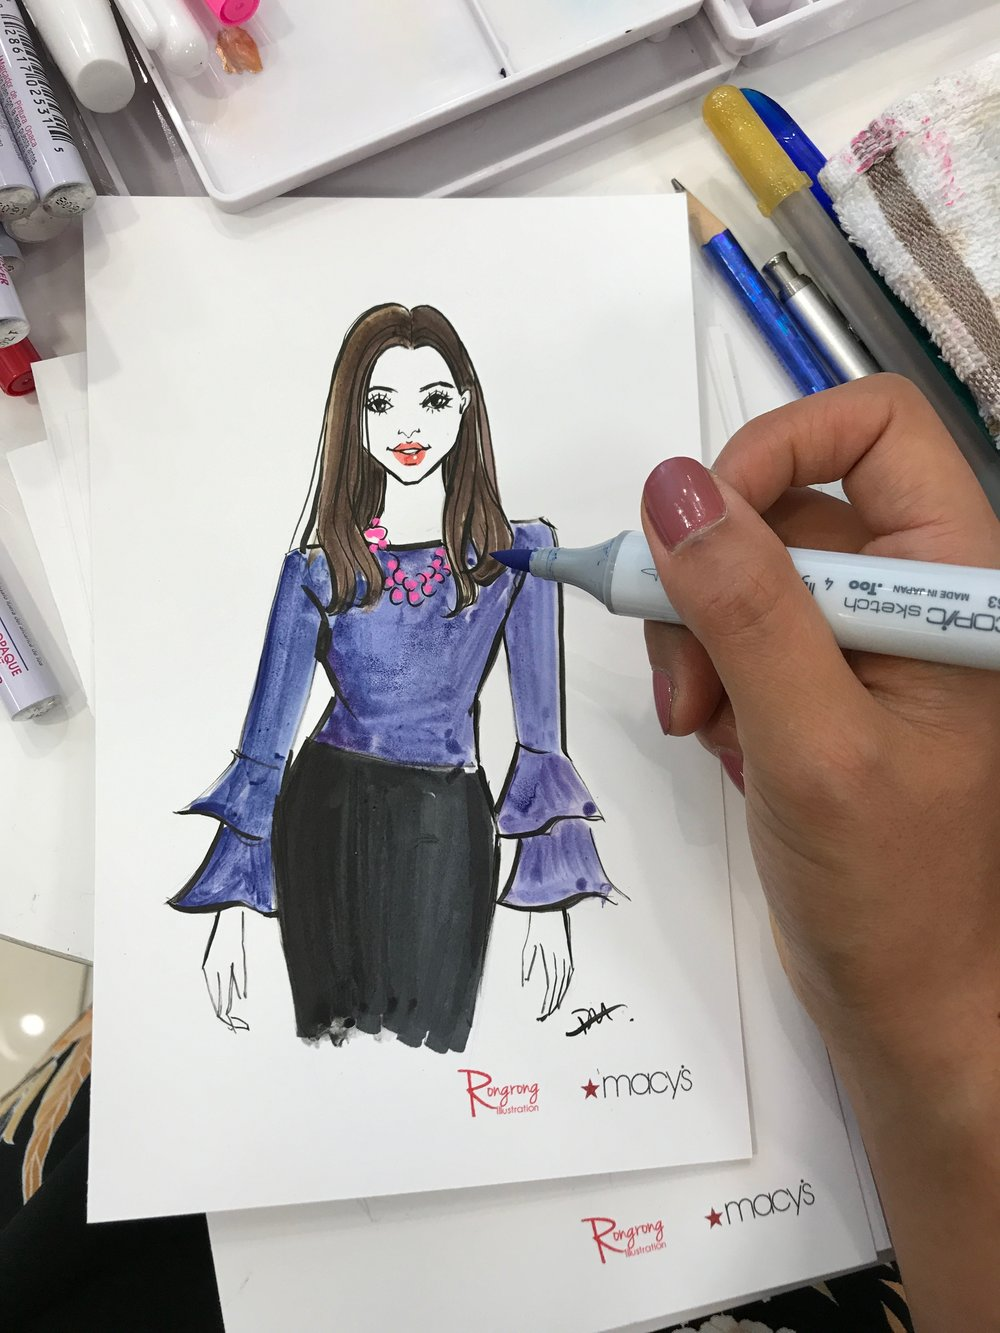 Rongrong DeVoe-live sketch artist doing live sketching at Macy's Fall Fashion Event.jpeg